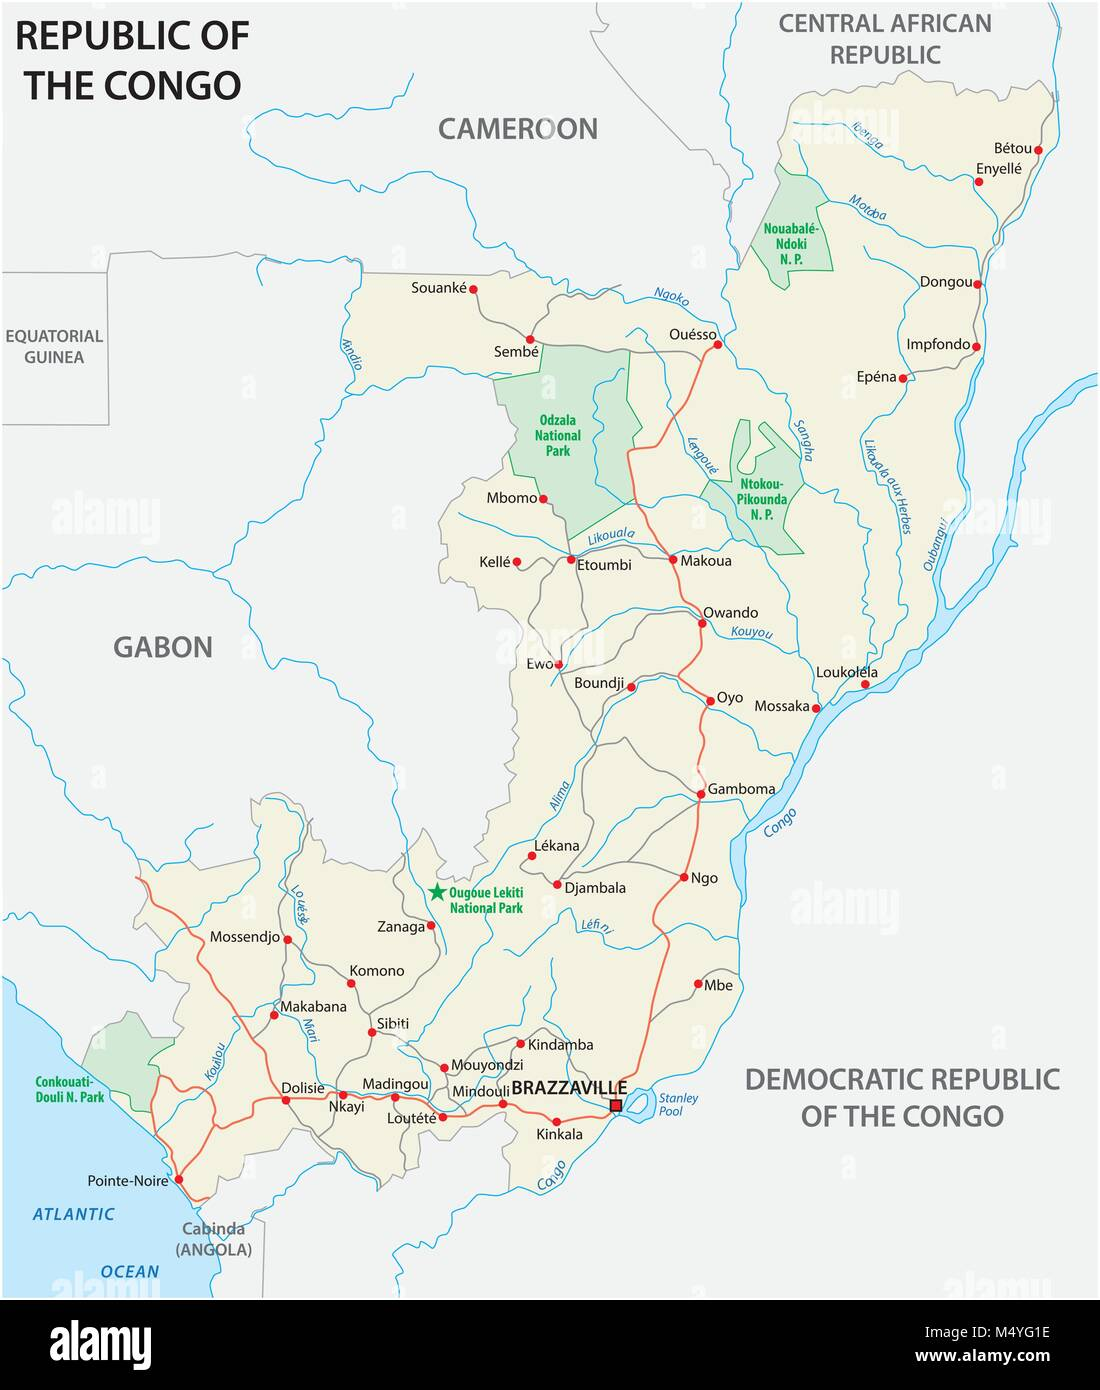 Republic of the congo road vector map - Stock Image